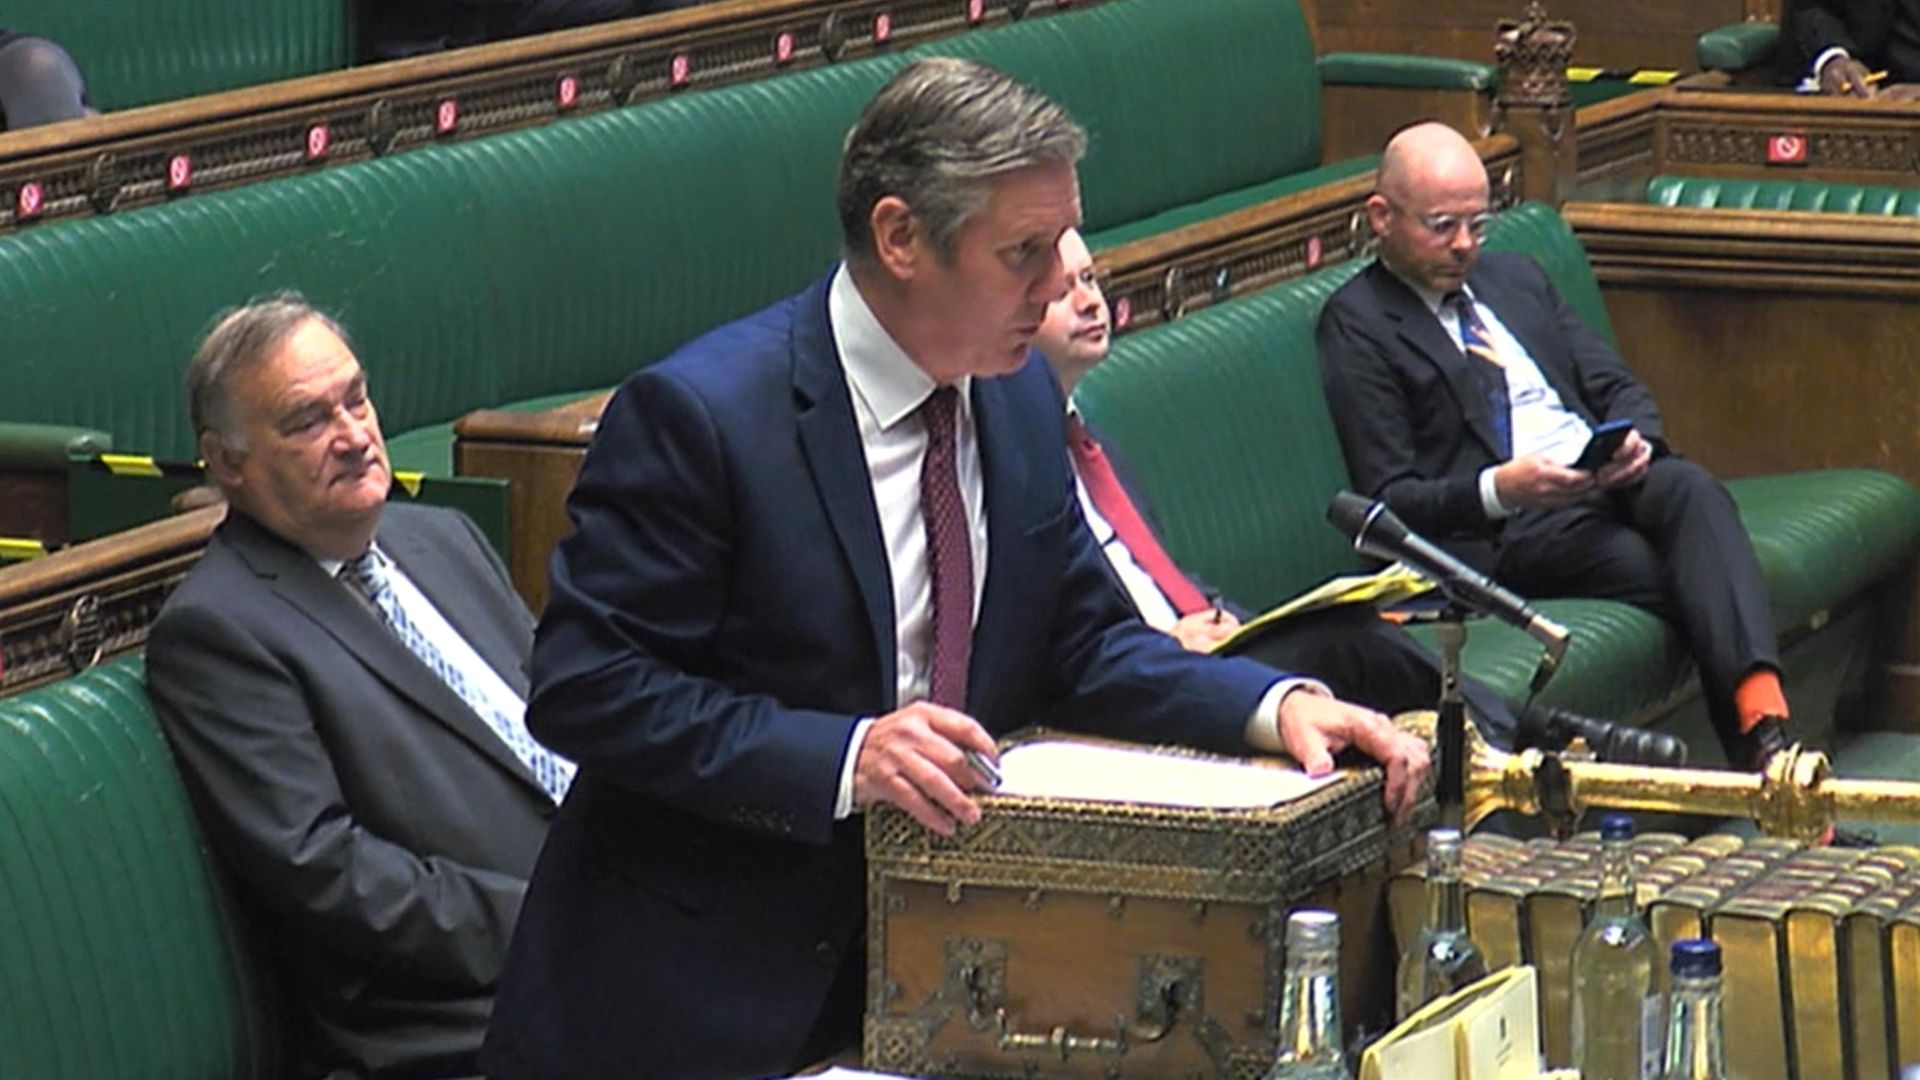 Labour leader Keir Starmer speaks during Prime Minister's Questions - Credit: PA